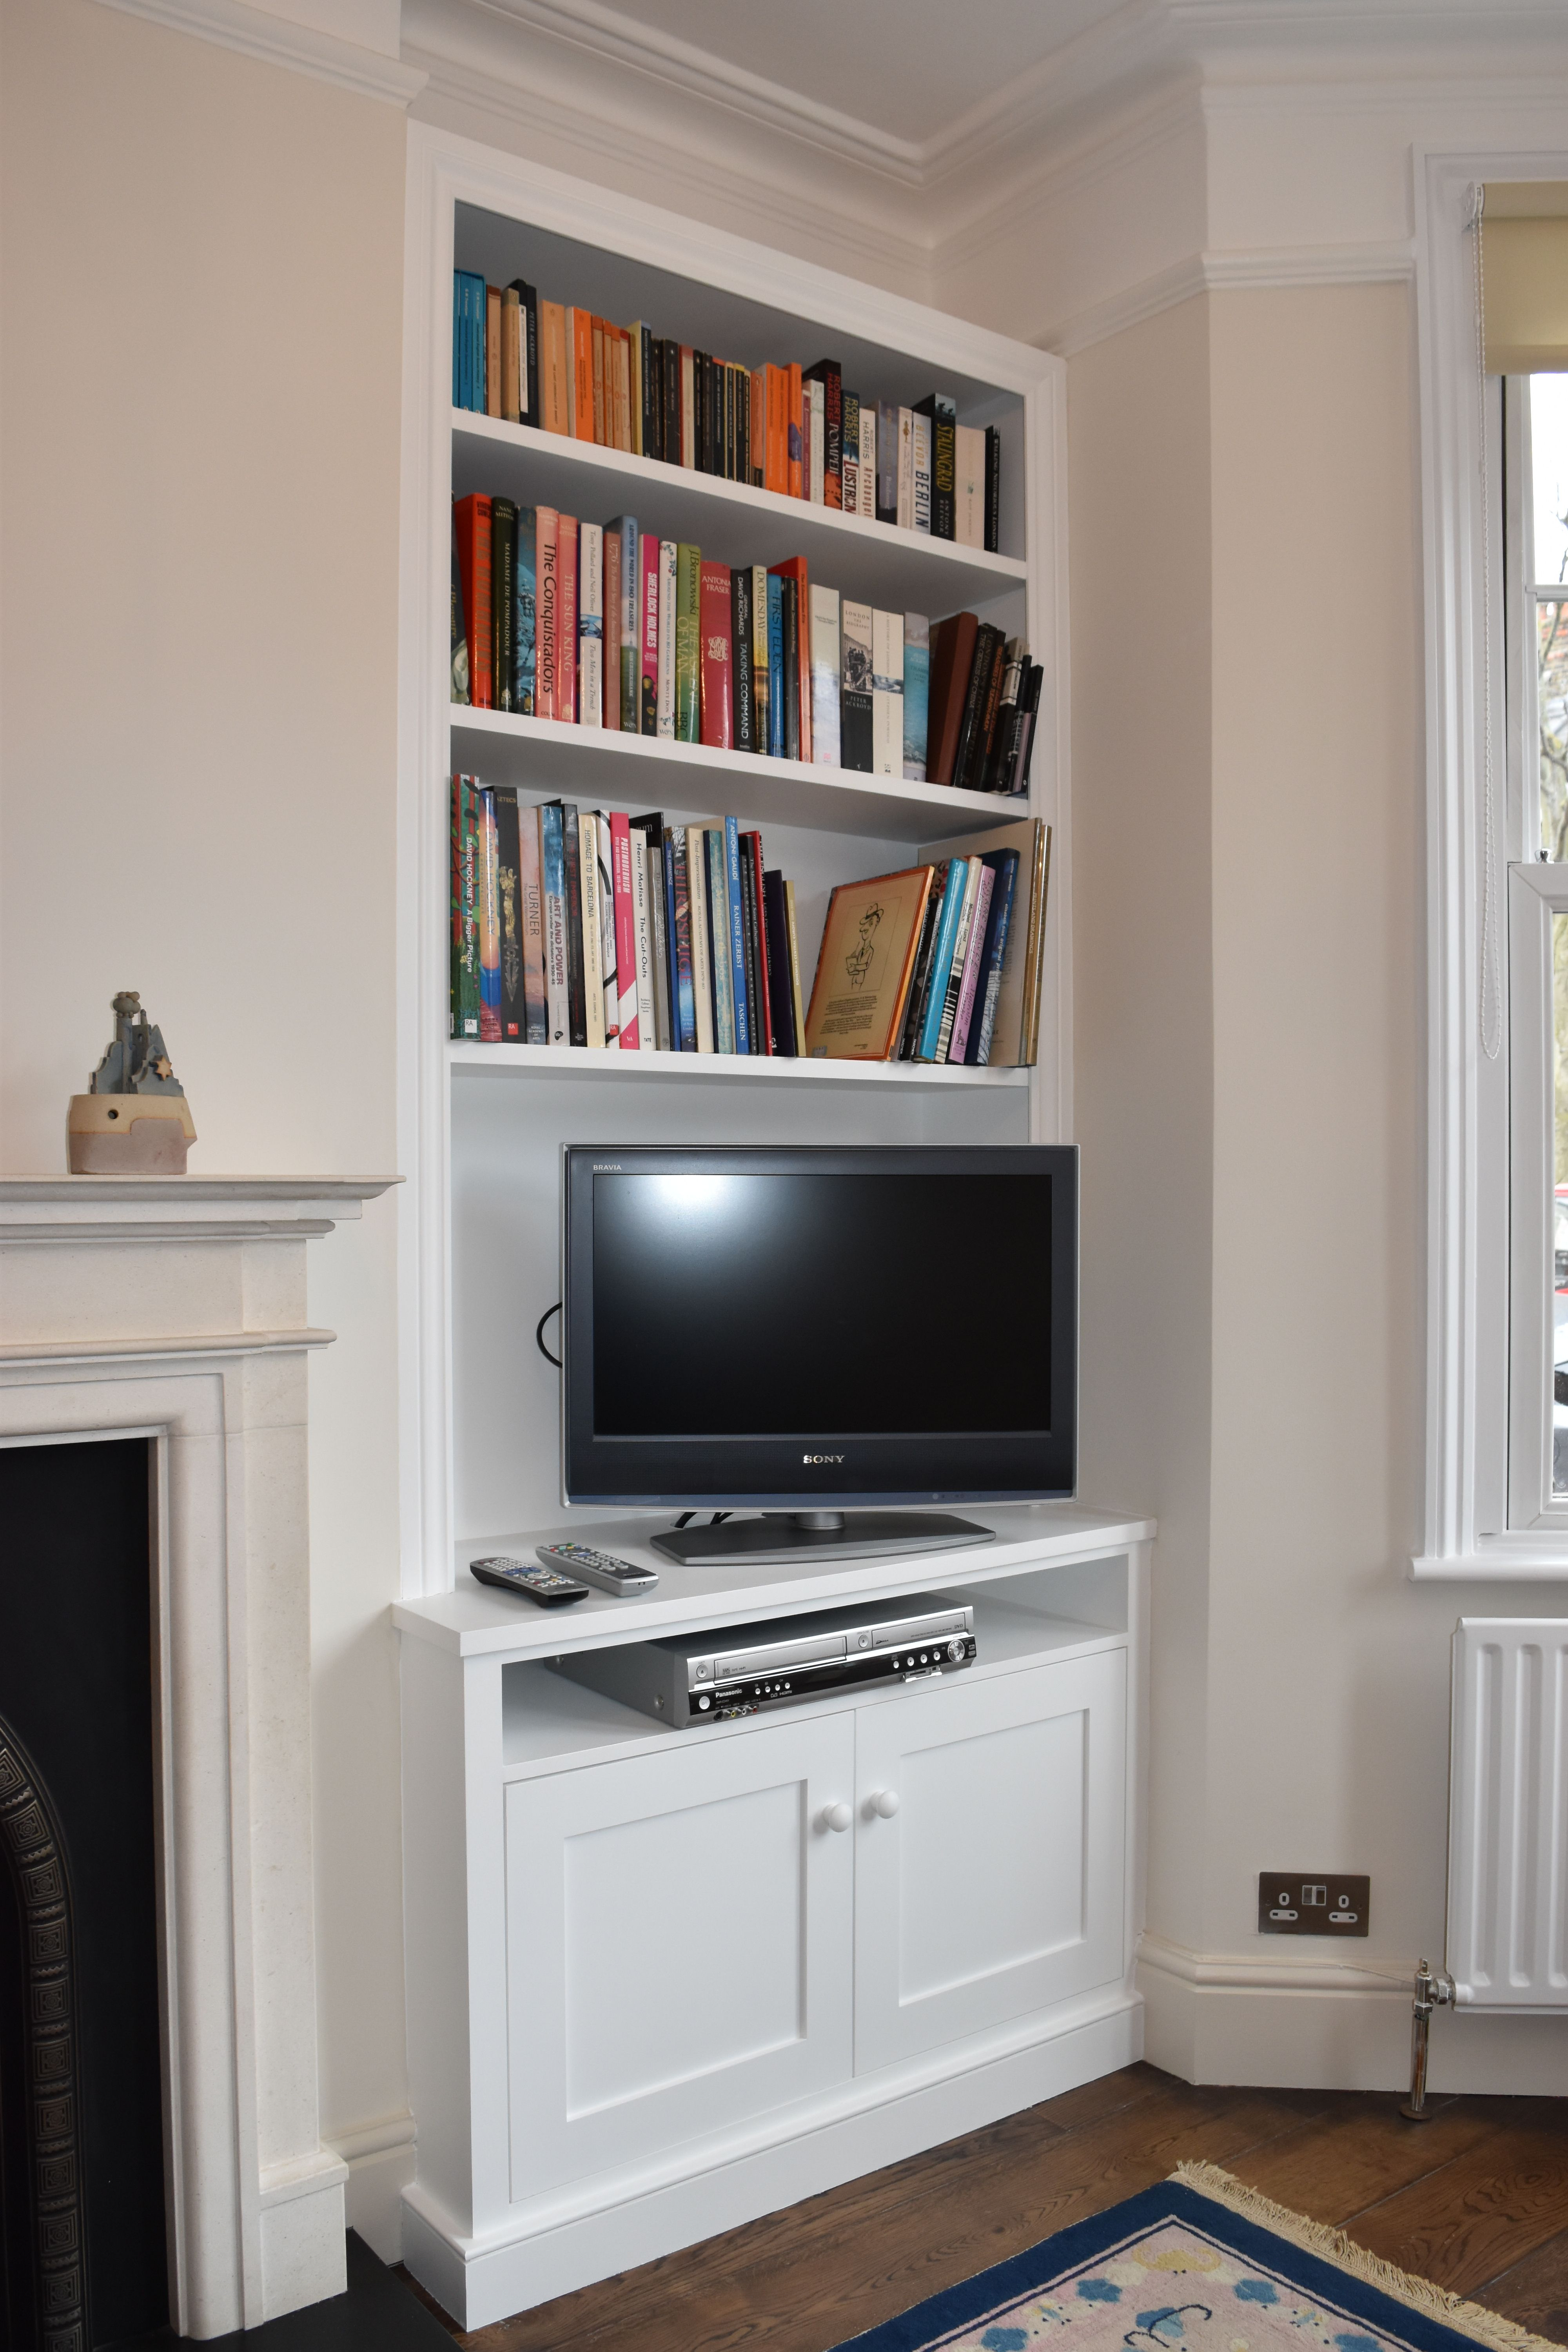 #Alcove #Cupboards #Shelving #Livingroom #Sscarpentry - Cabinets - Pinterest -